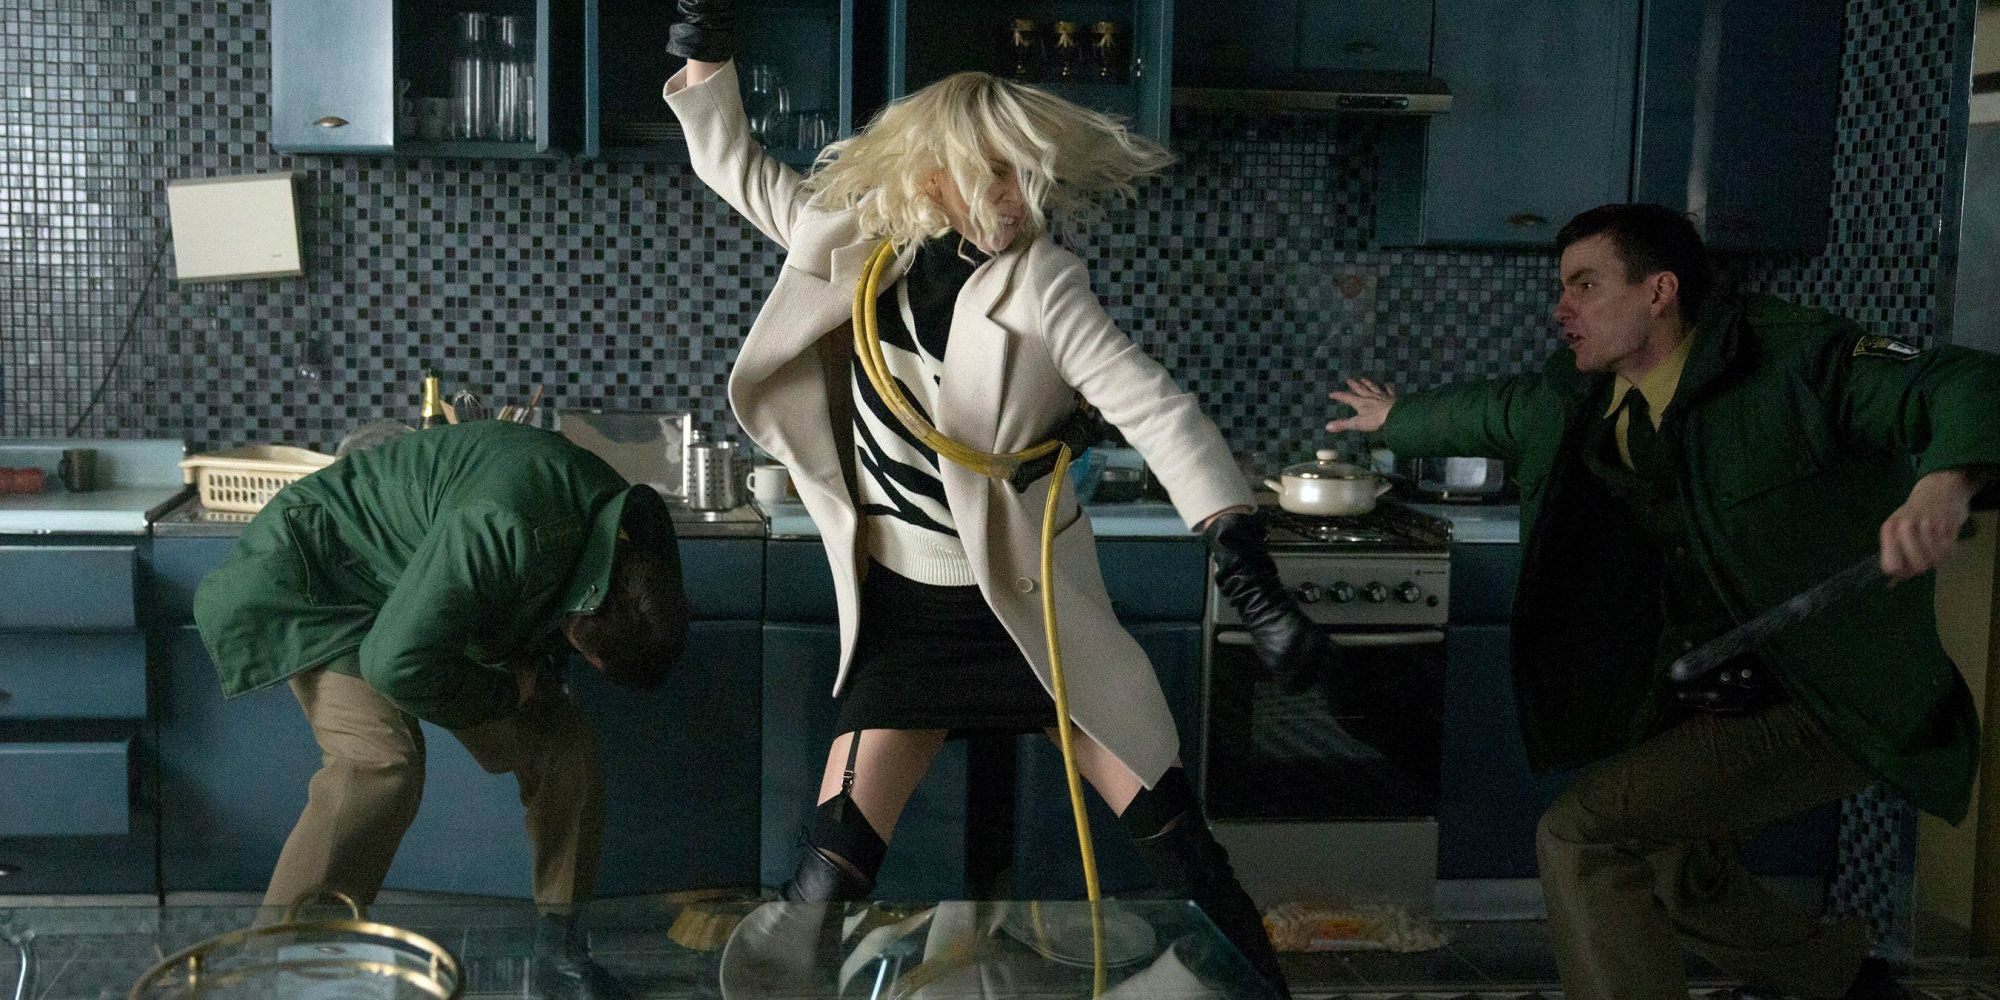 https://static0.srcdn.com/wp-content/uploads/2017/03/atomic-blonde-movie-charlize-theron-fight.jpg